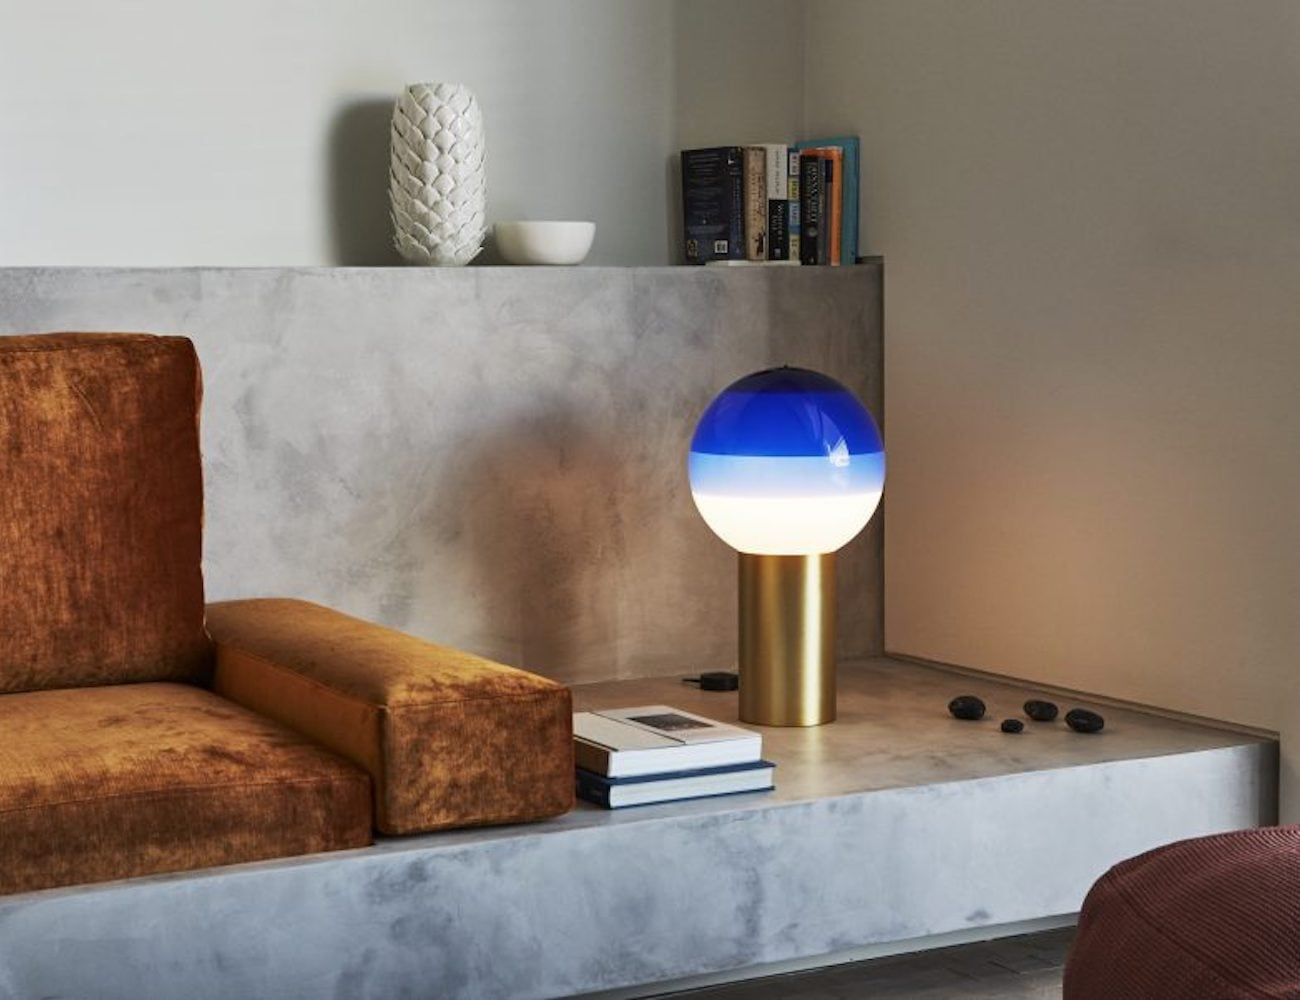 Marset Multicolored Paint-Dipped Lamp creates eye-catching ambiance